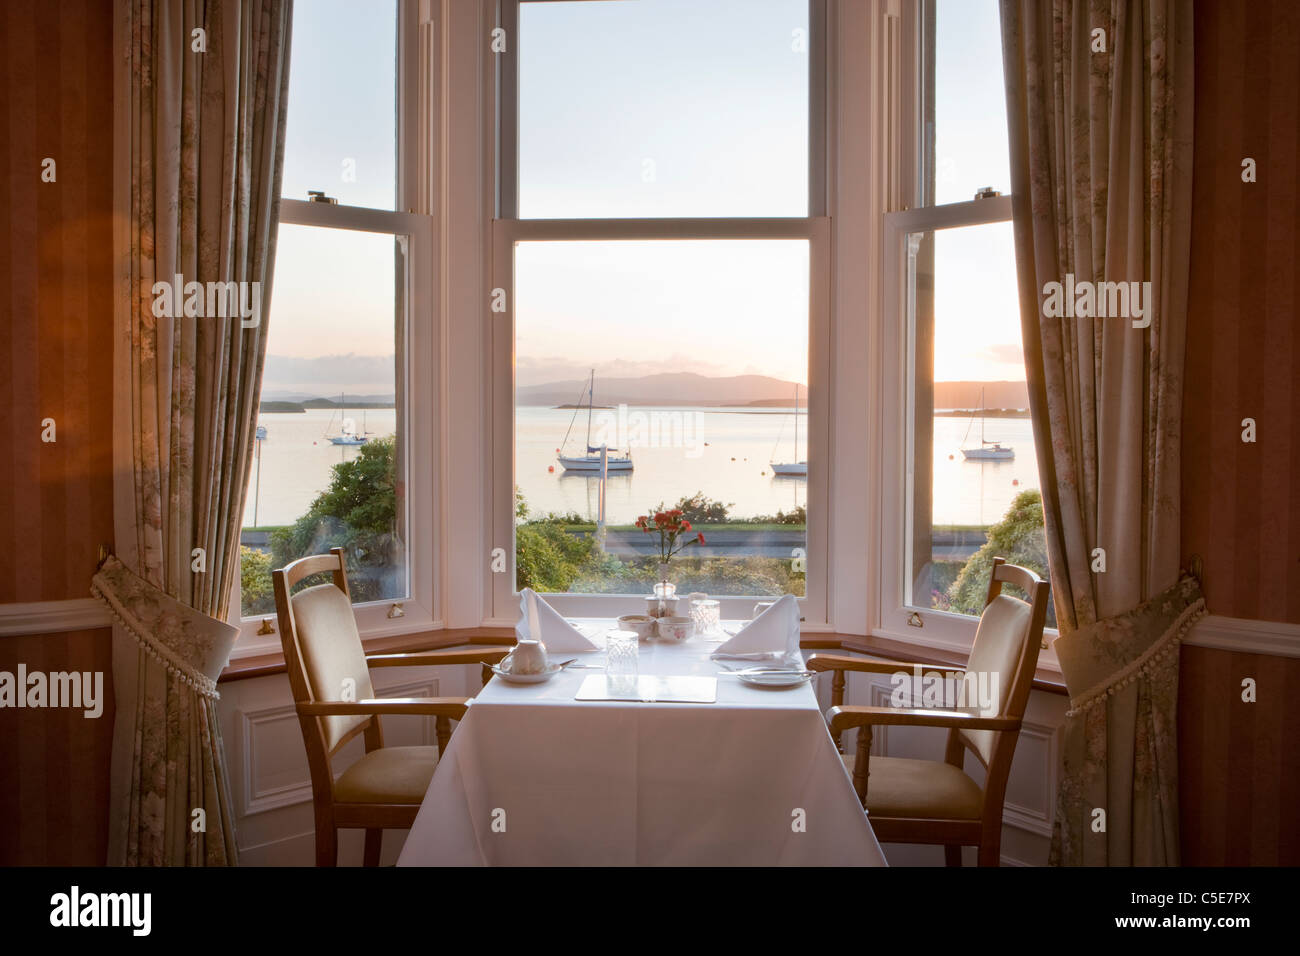 Guest house dining room overlooking loch at sunset, Scotland, UK - Stock Image